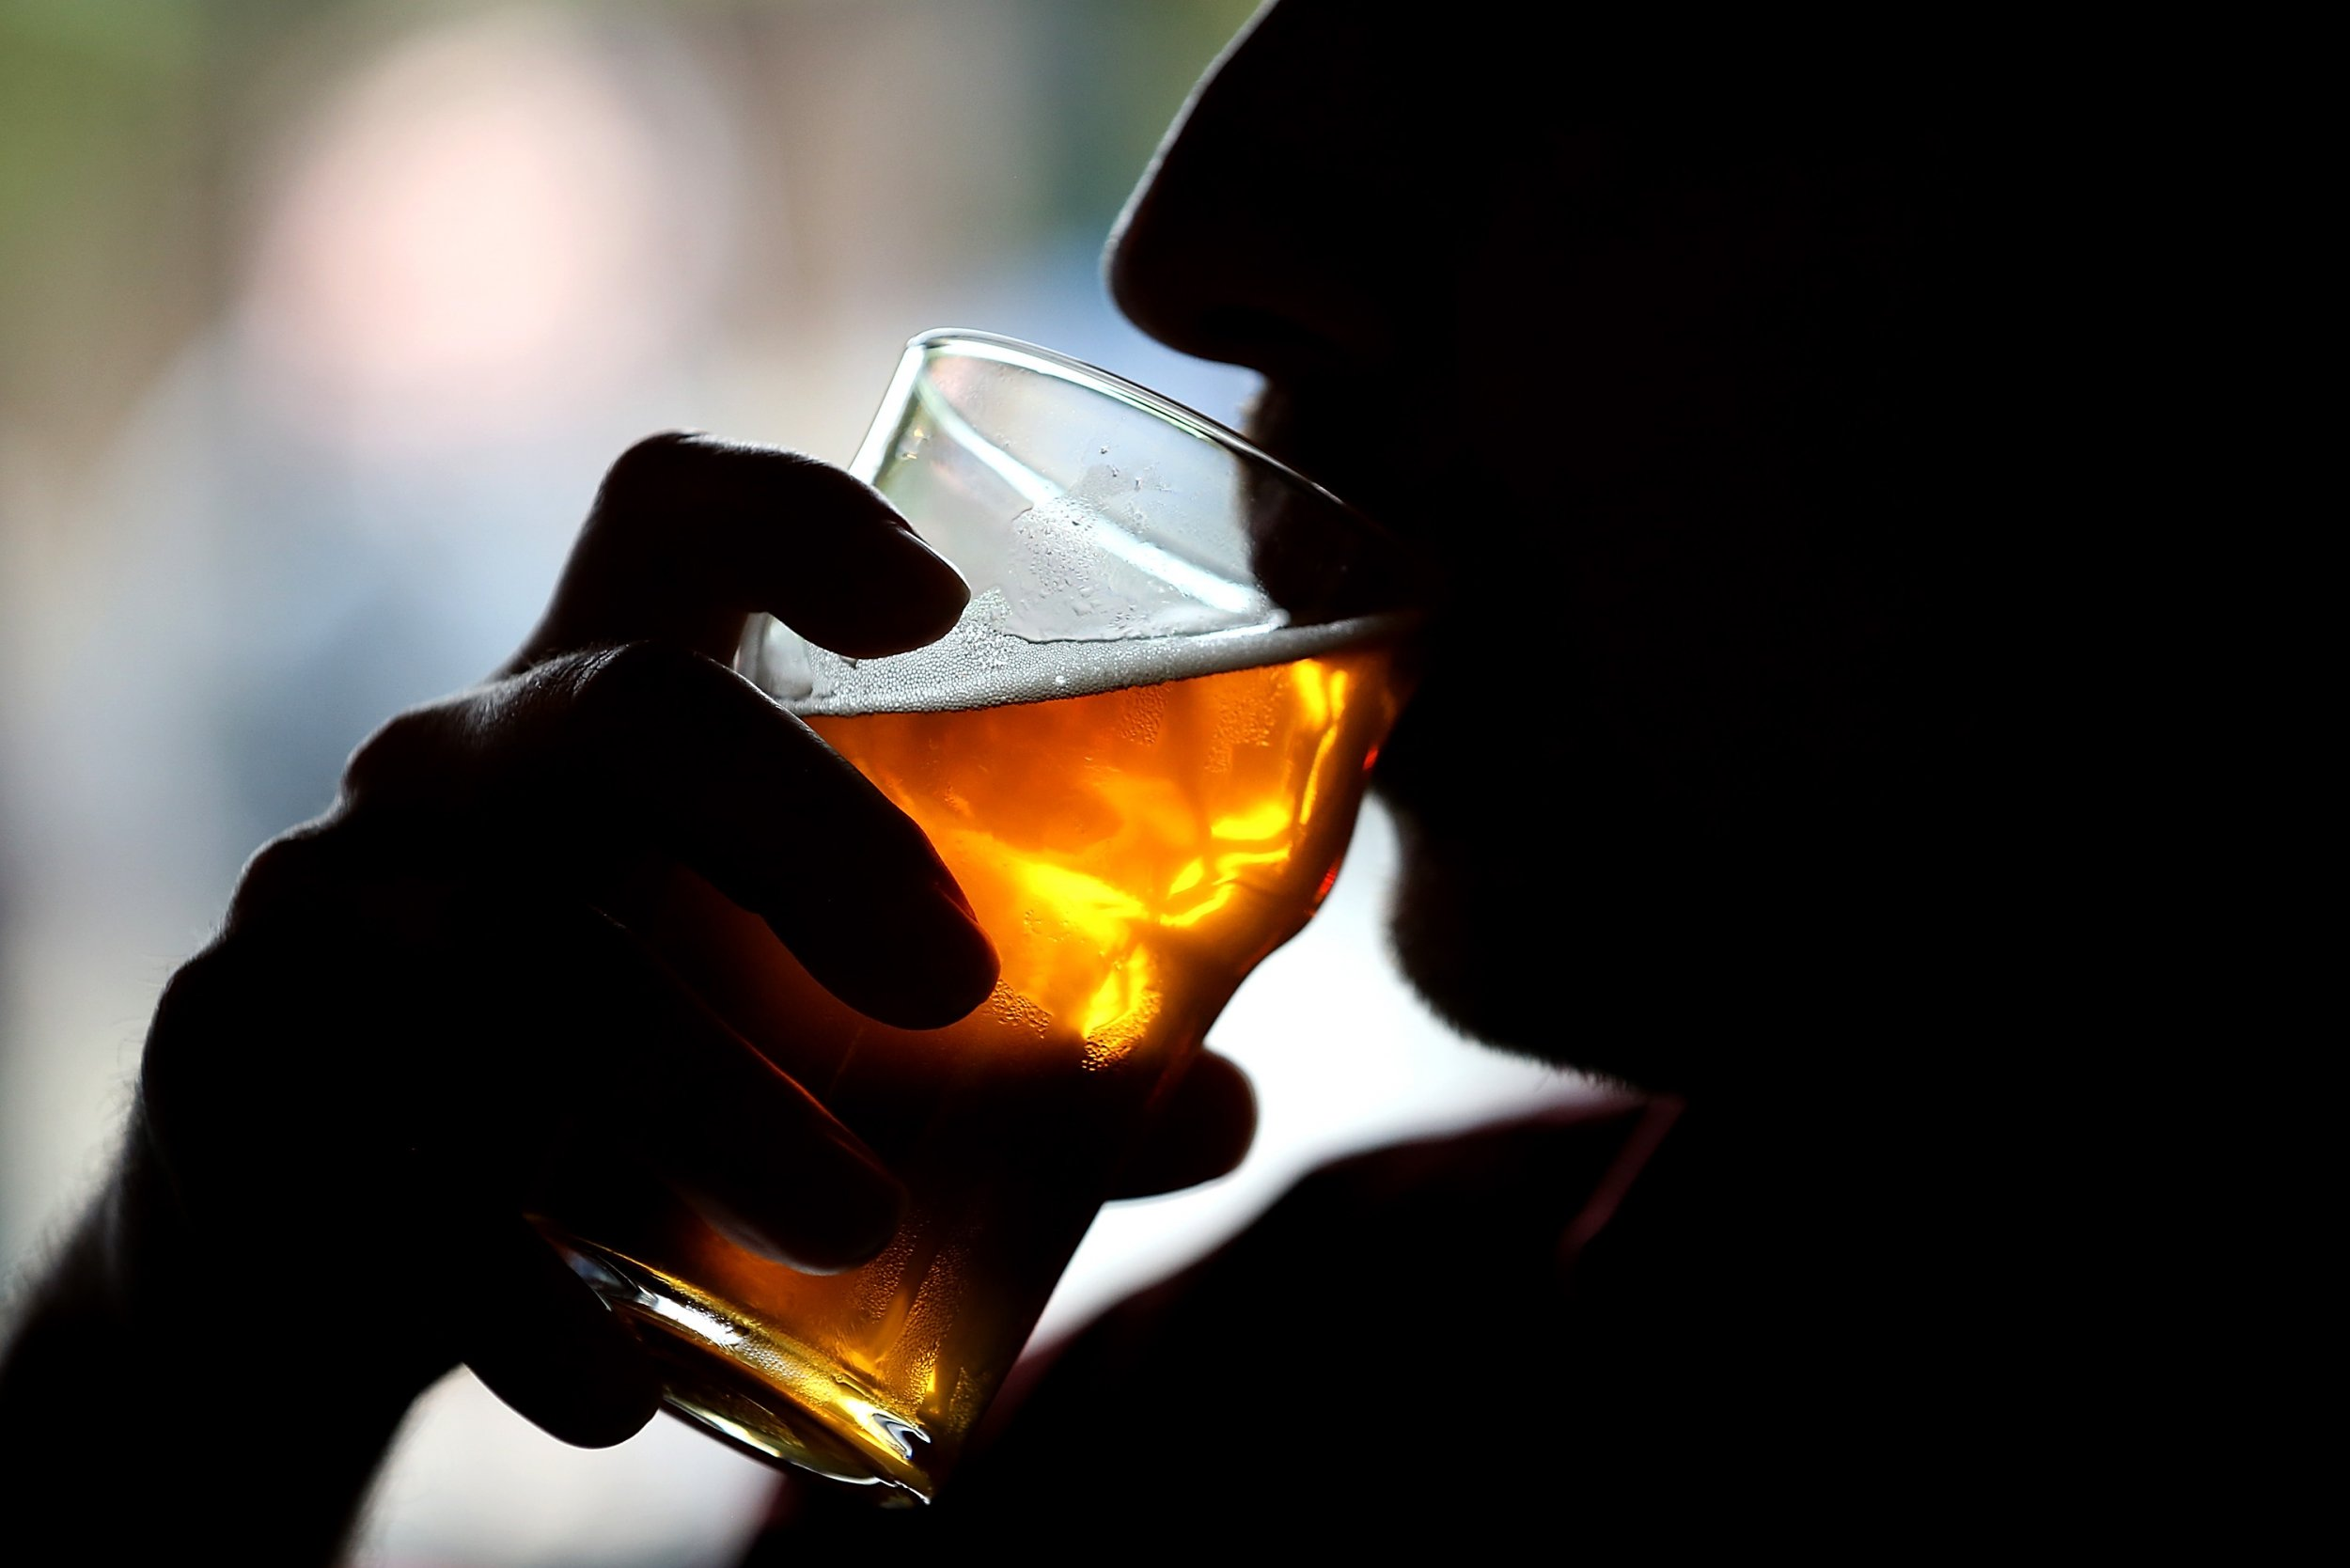 Alcohol and Brain Damage: Moderate Drinking Linked to Cognitive Decline